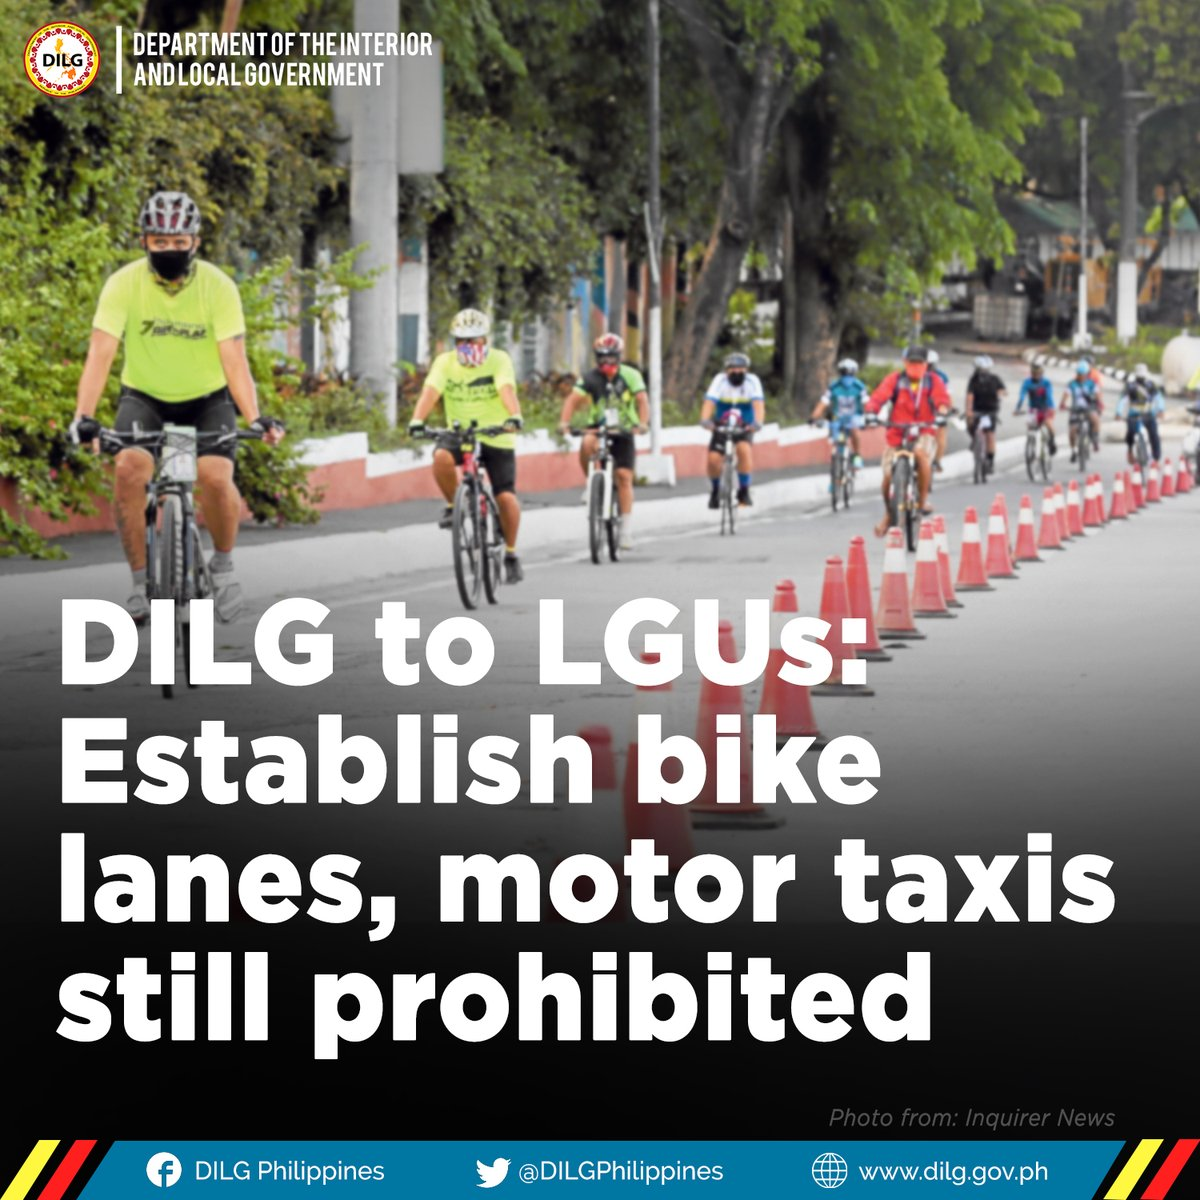 As the country transitions to a new normal, the DILG is urging all LGUs to establish bicycle lanes in all local roads to support those who will bike to their work destination due to the reduced capacity of public transportation under the GCQ. https://t.co/VpfgMX5QjU #BeatCOVID19 https://t.co/hDc0Zampi9